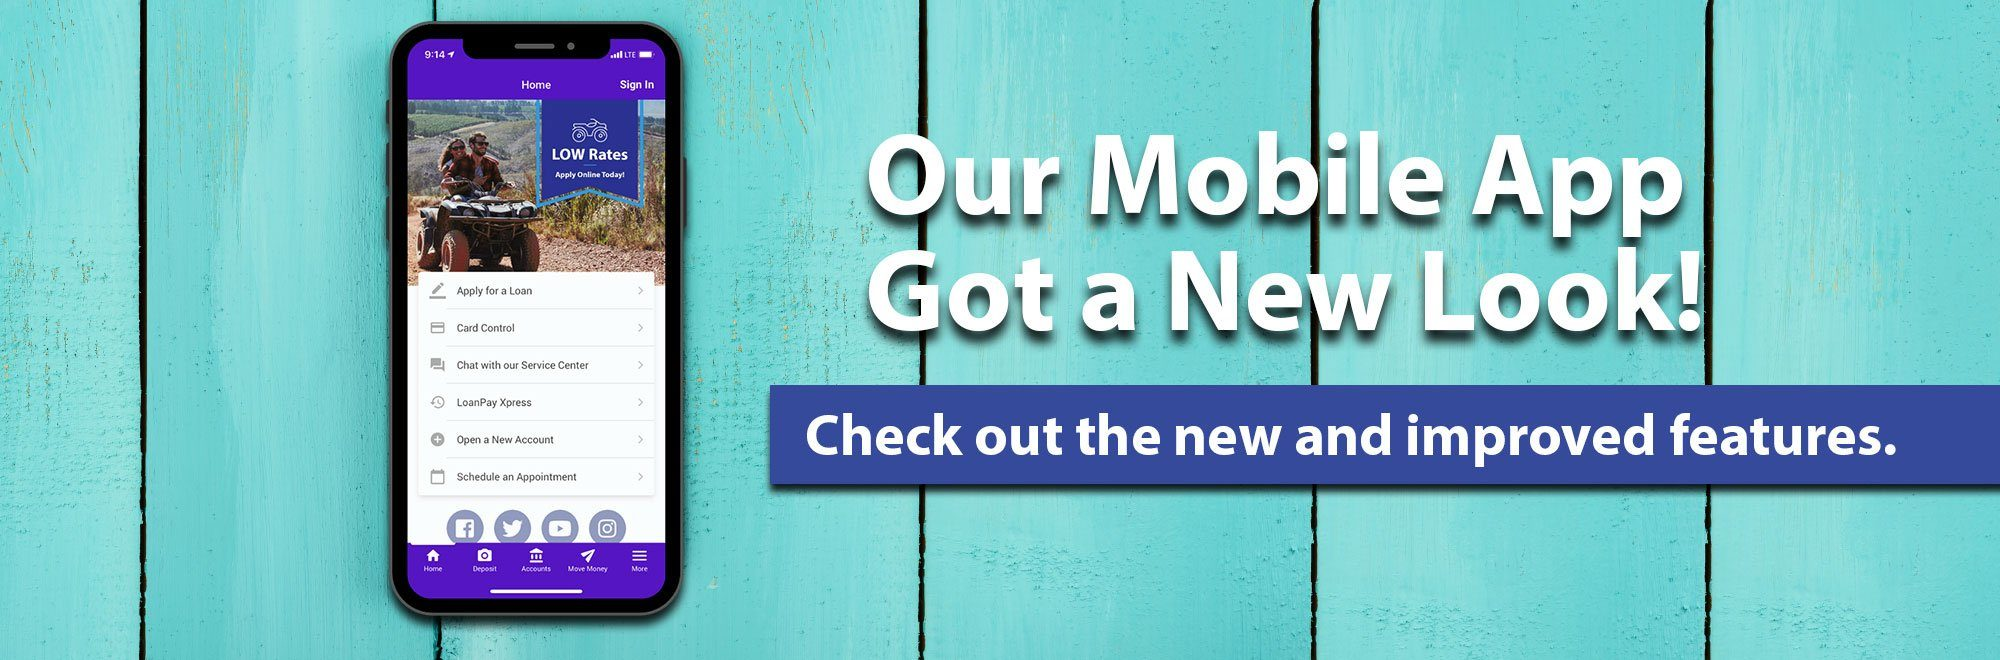 Our mobile app got a new look. Check out the new and improved features.